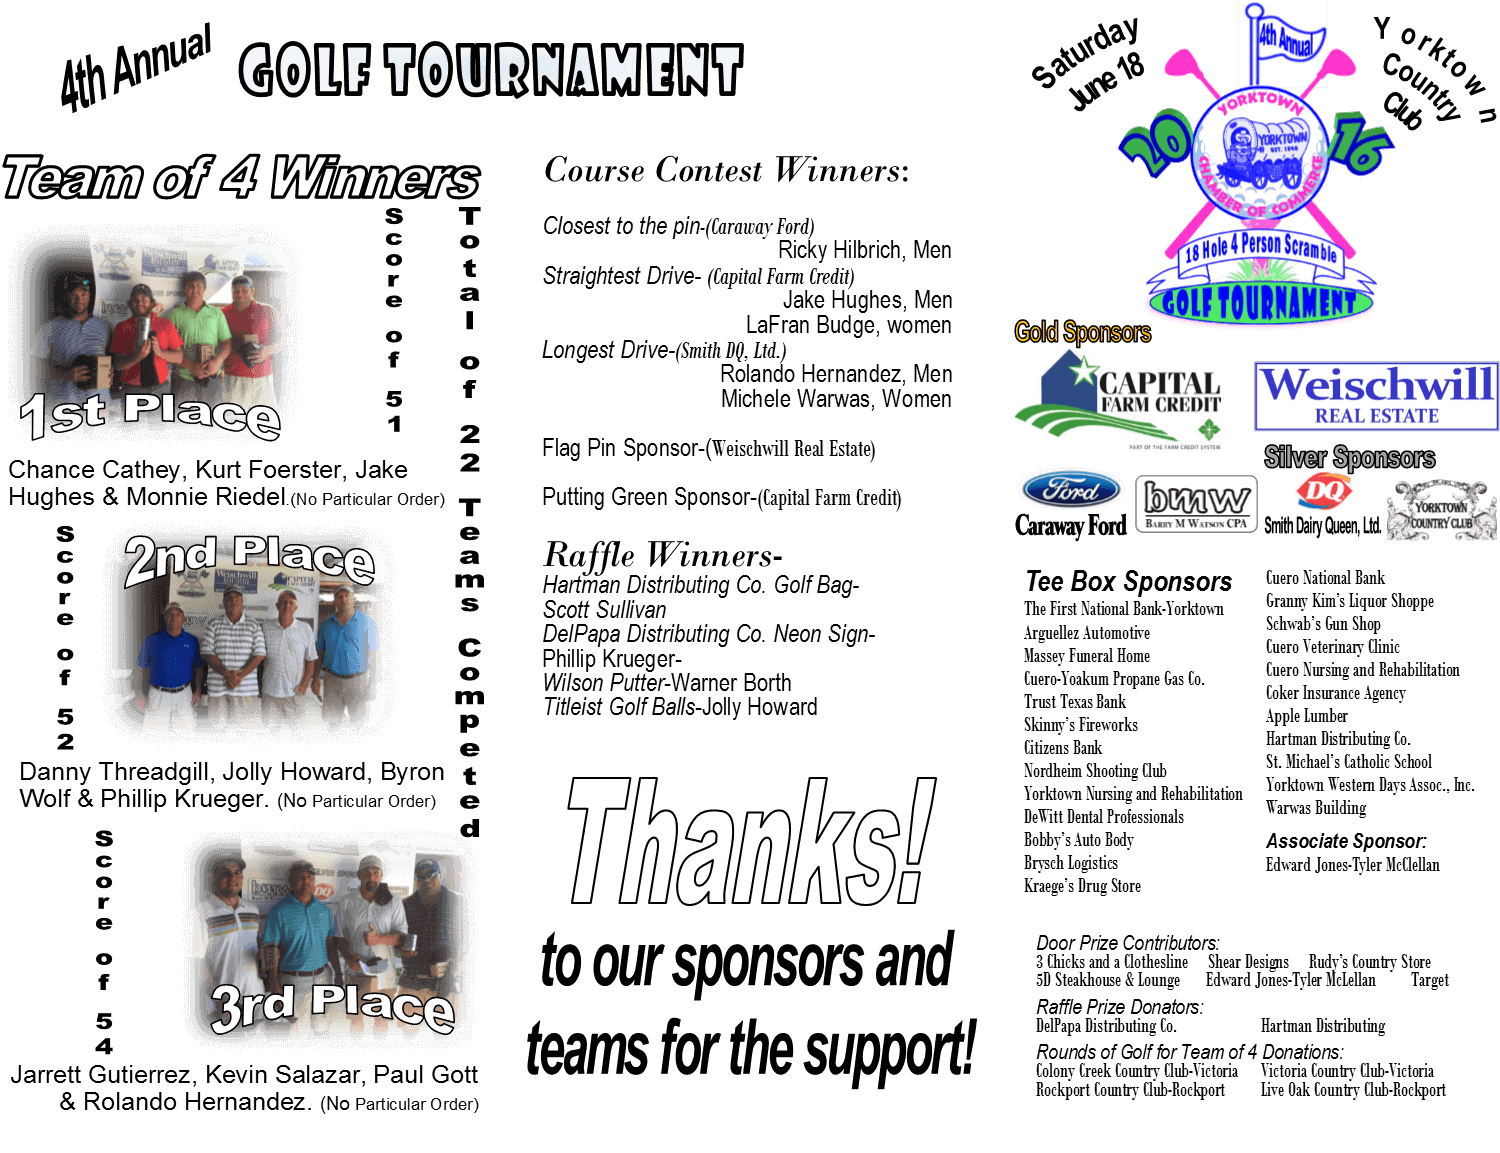 Golf Tournment winners